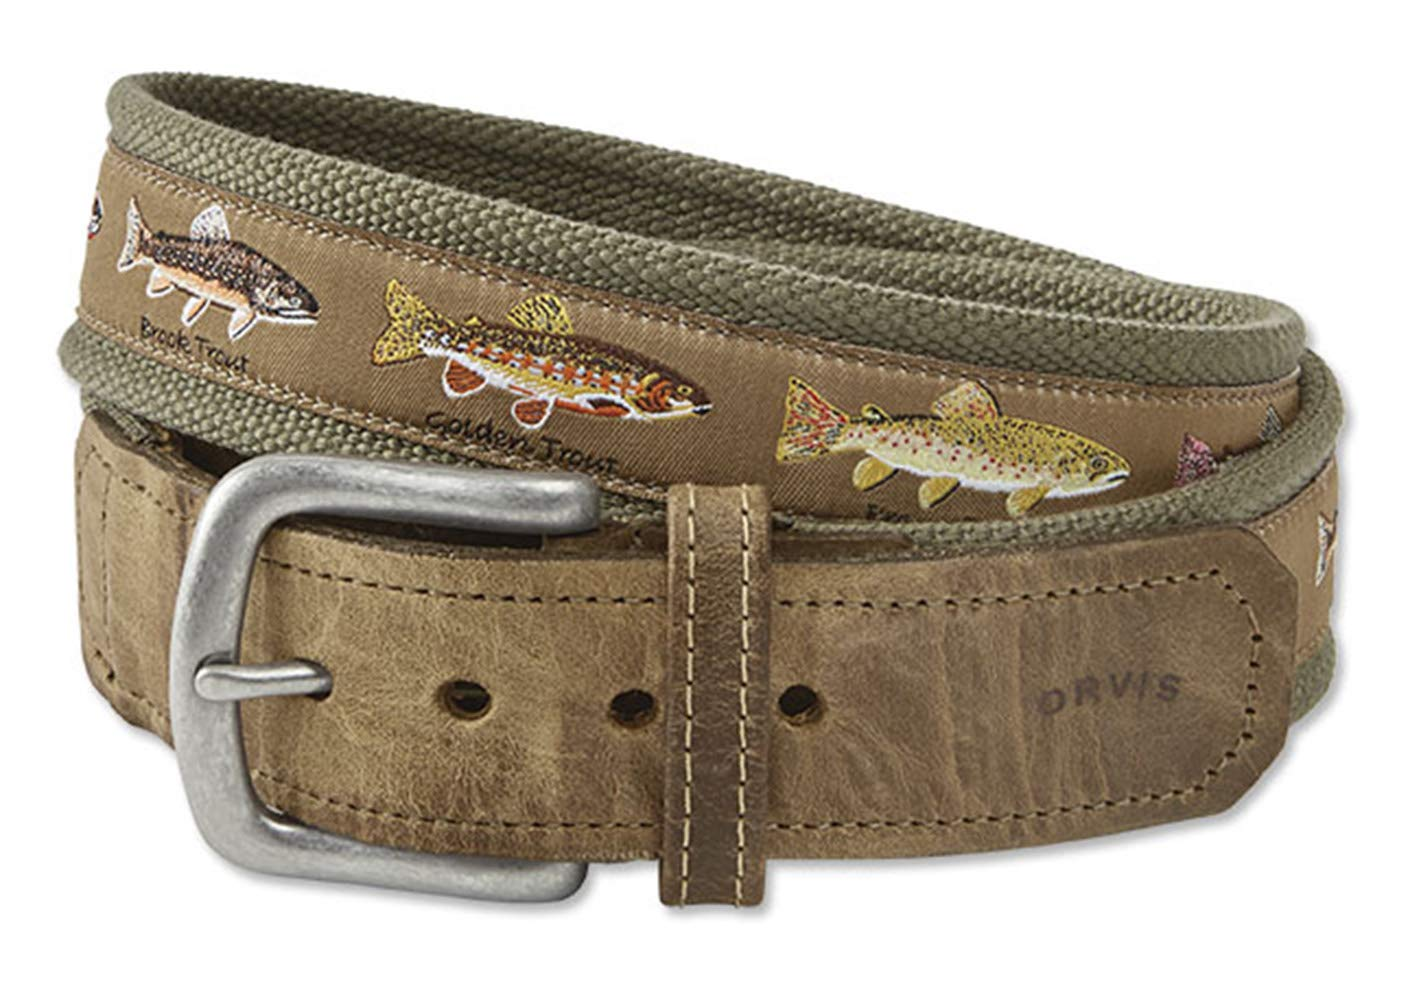 Orvis Men's Pontoon Trout Story Belt, Olive, 38 by Orvis